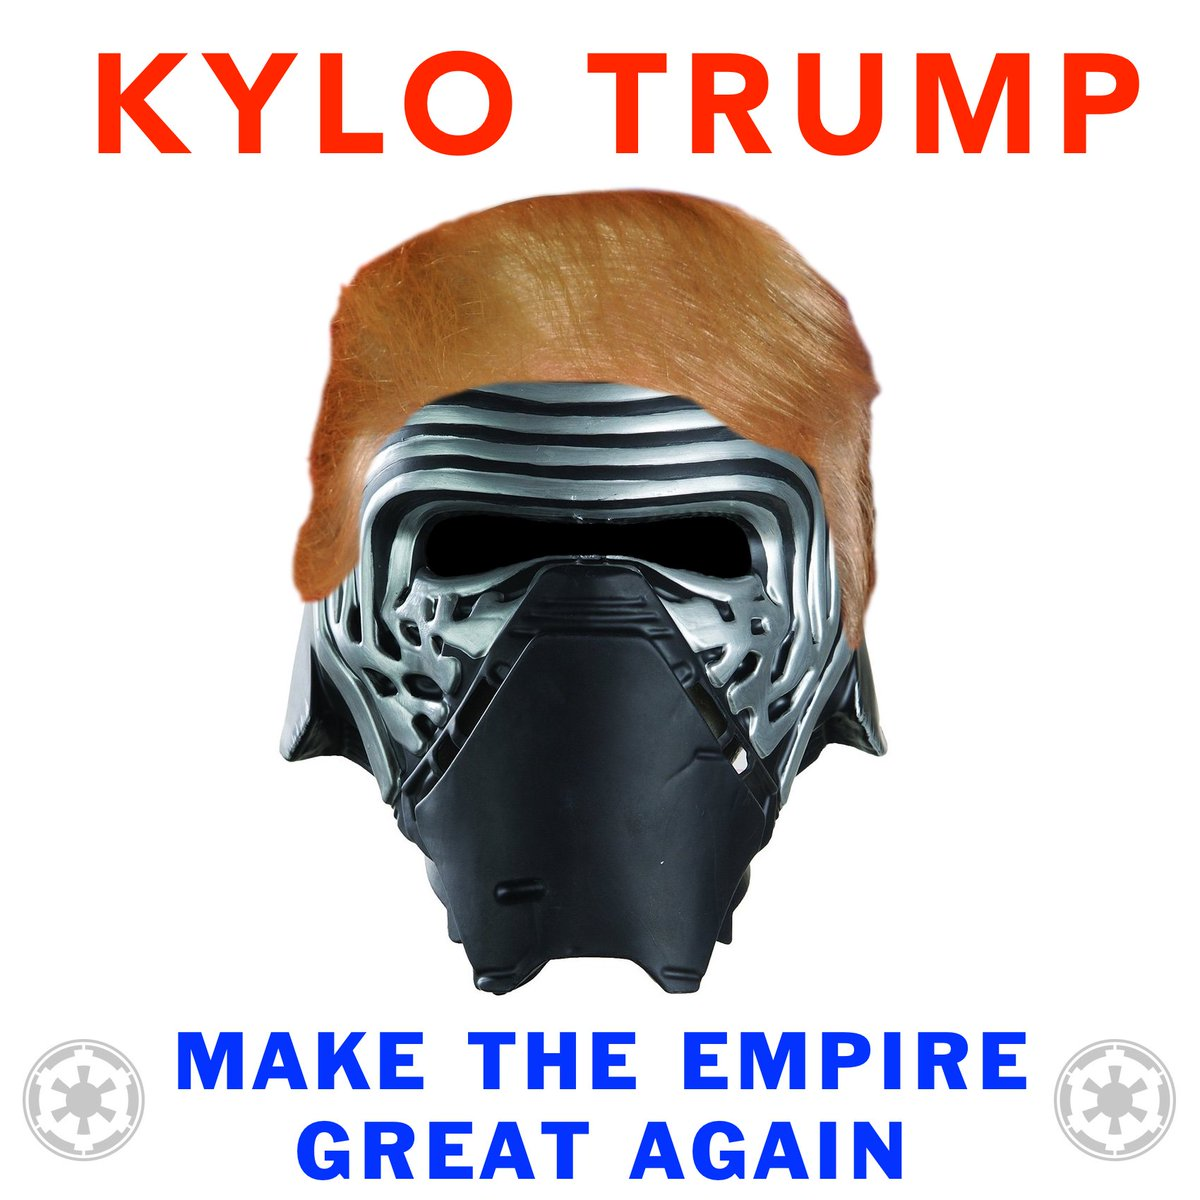 New podcast day! It's called Kylo Trump - Donald Trump's words read in Kylo Ren's voice. https://t.co/caKkA8ok1I https://t.co/1C6hsSl4jd